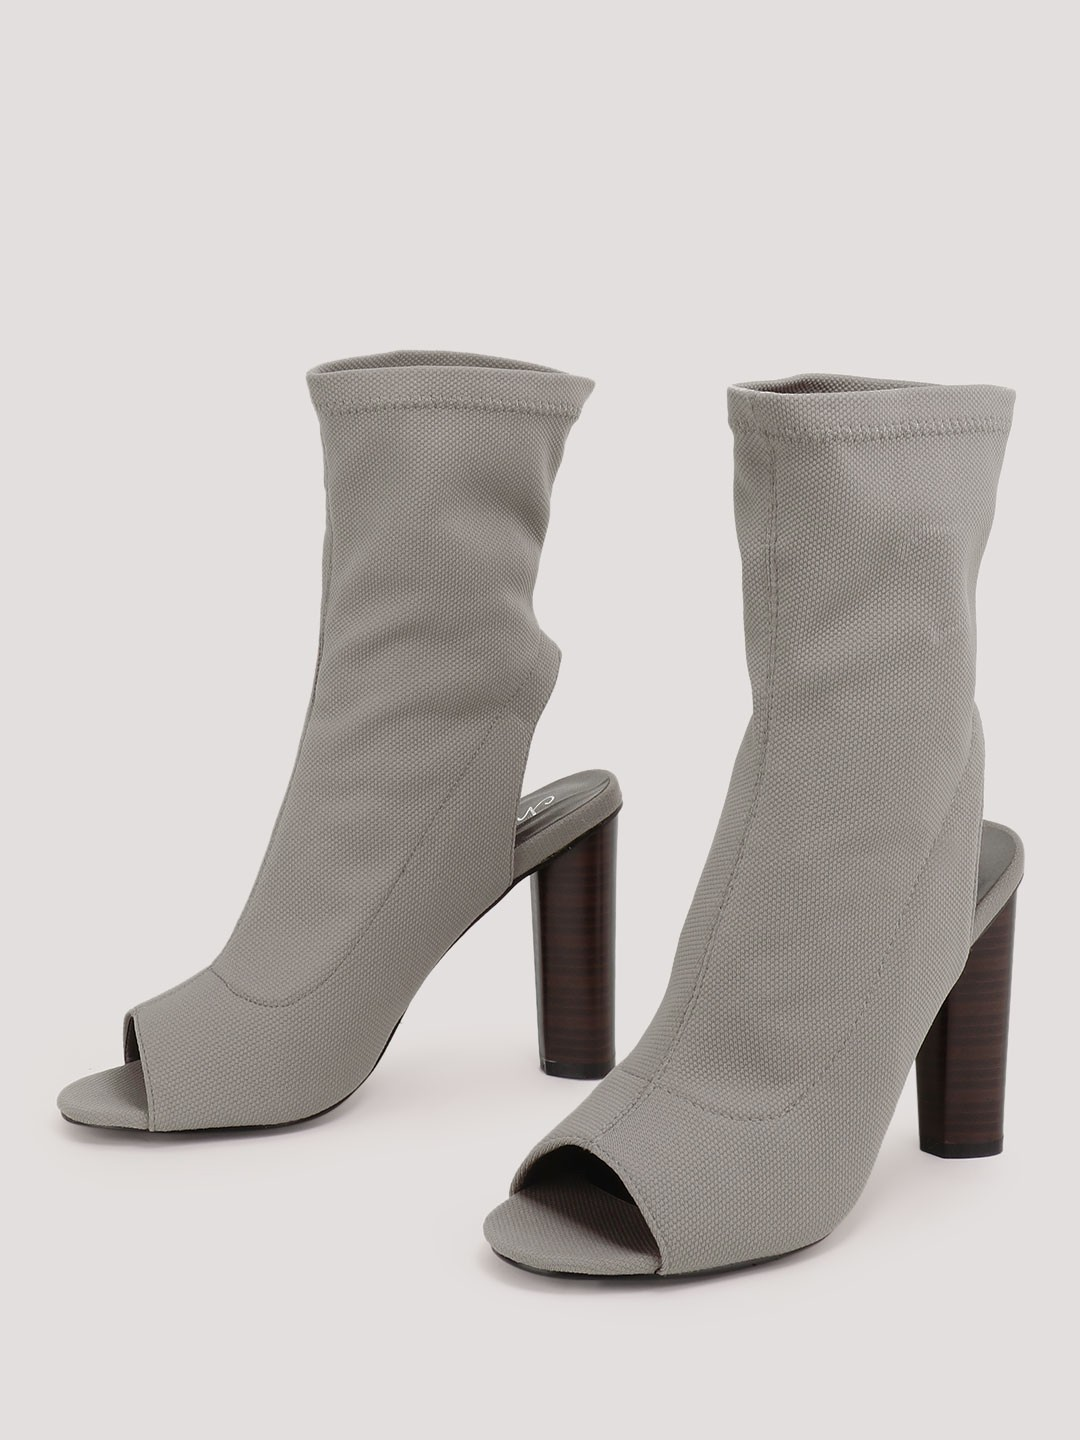 2 stylish boots - Sock Fit High Ankle Boots